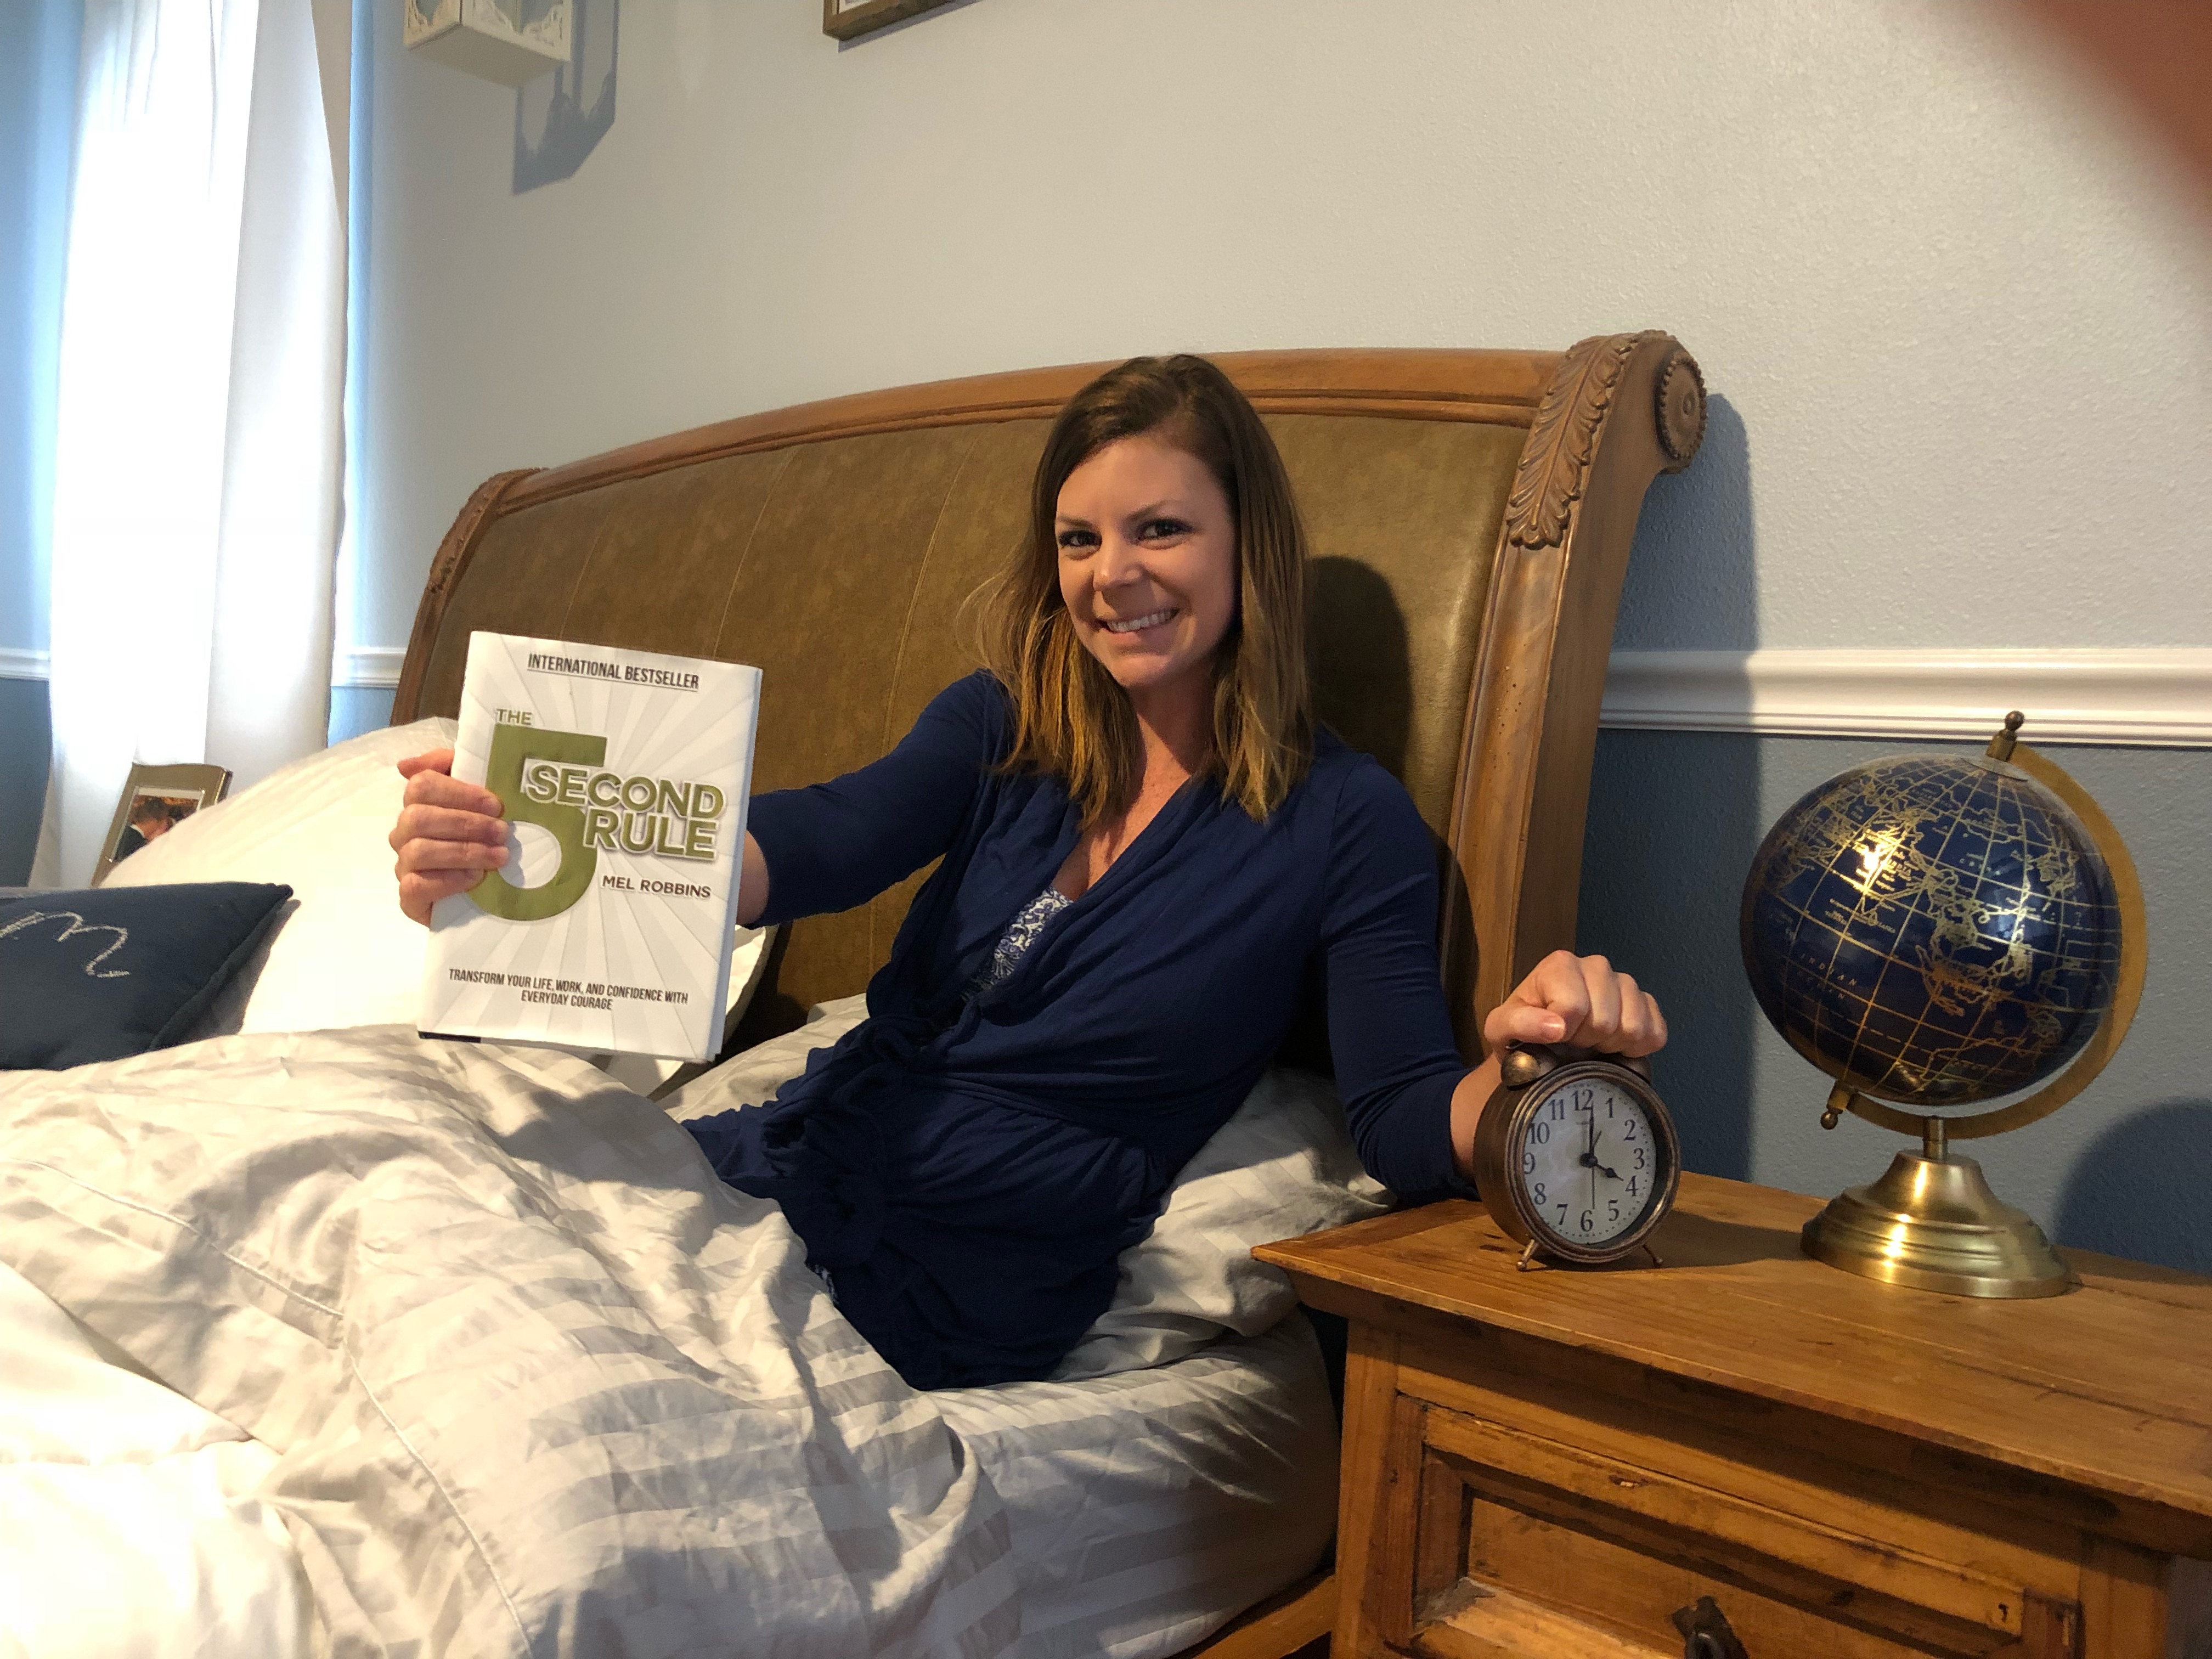 changed life 5 seconds – Erica holding the 5-second rule book and her alarm clock, smiling